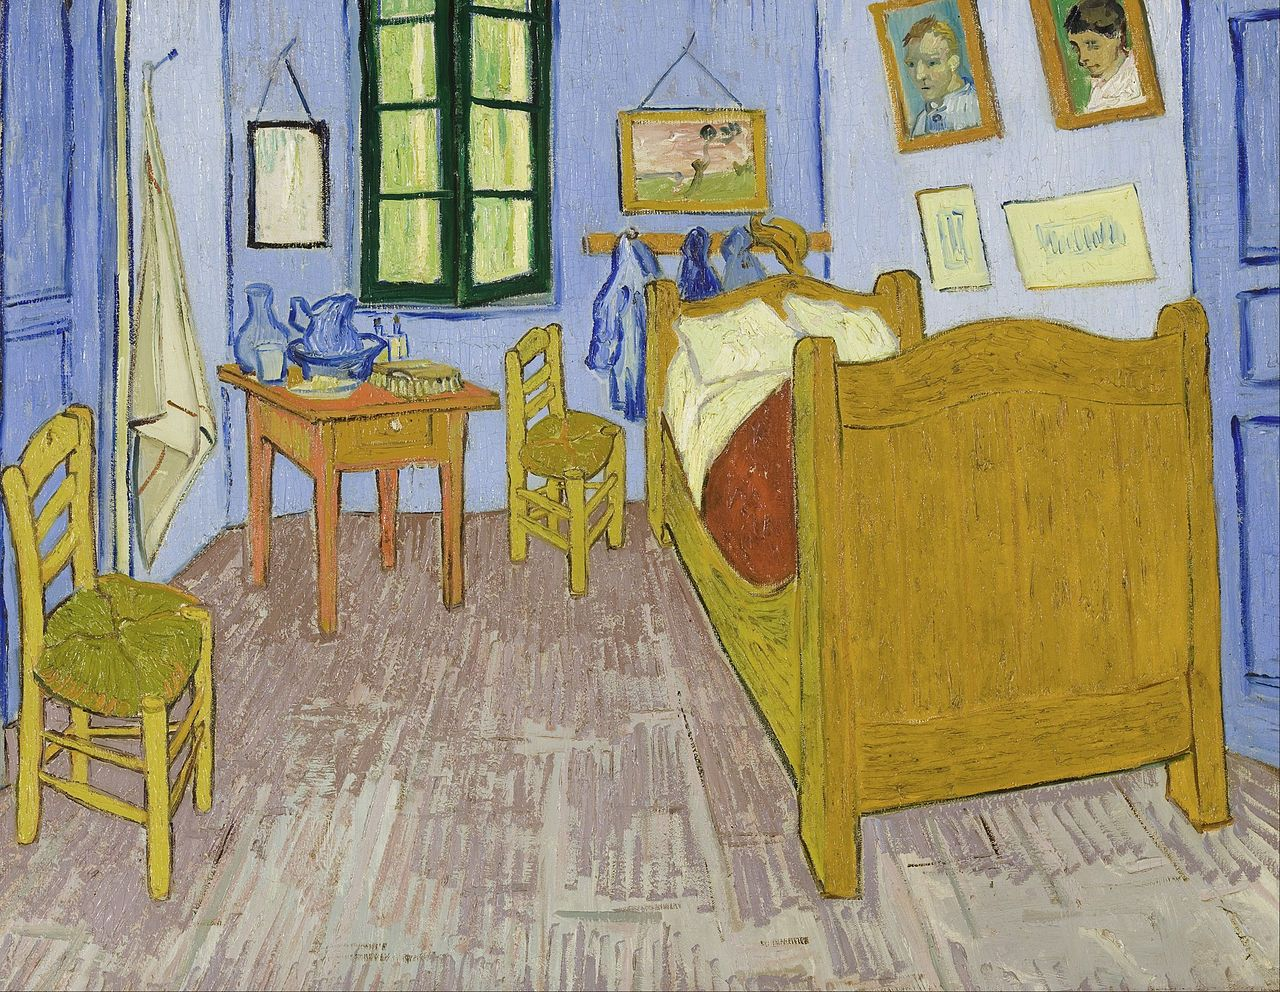 Bedroom in Arles, Third version, end September 1889. Oil on canvas, 57.5 x 74 cm, Van Gogh. Note that the wall was originally violet